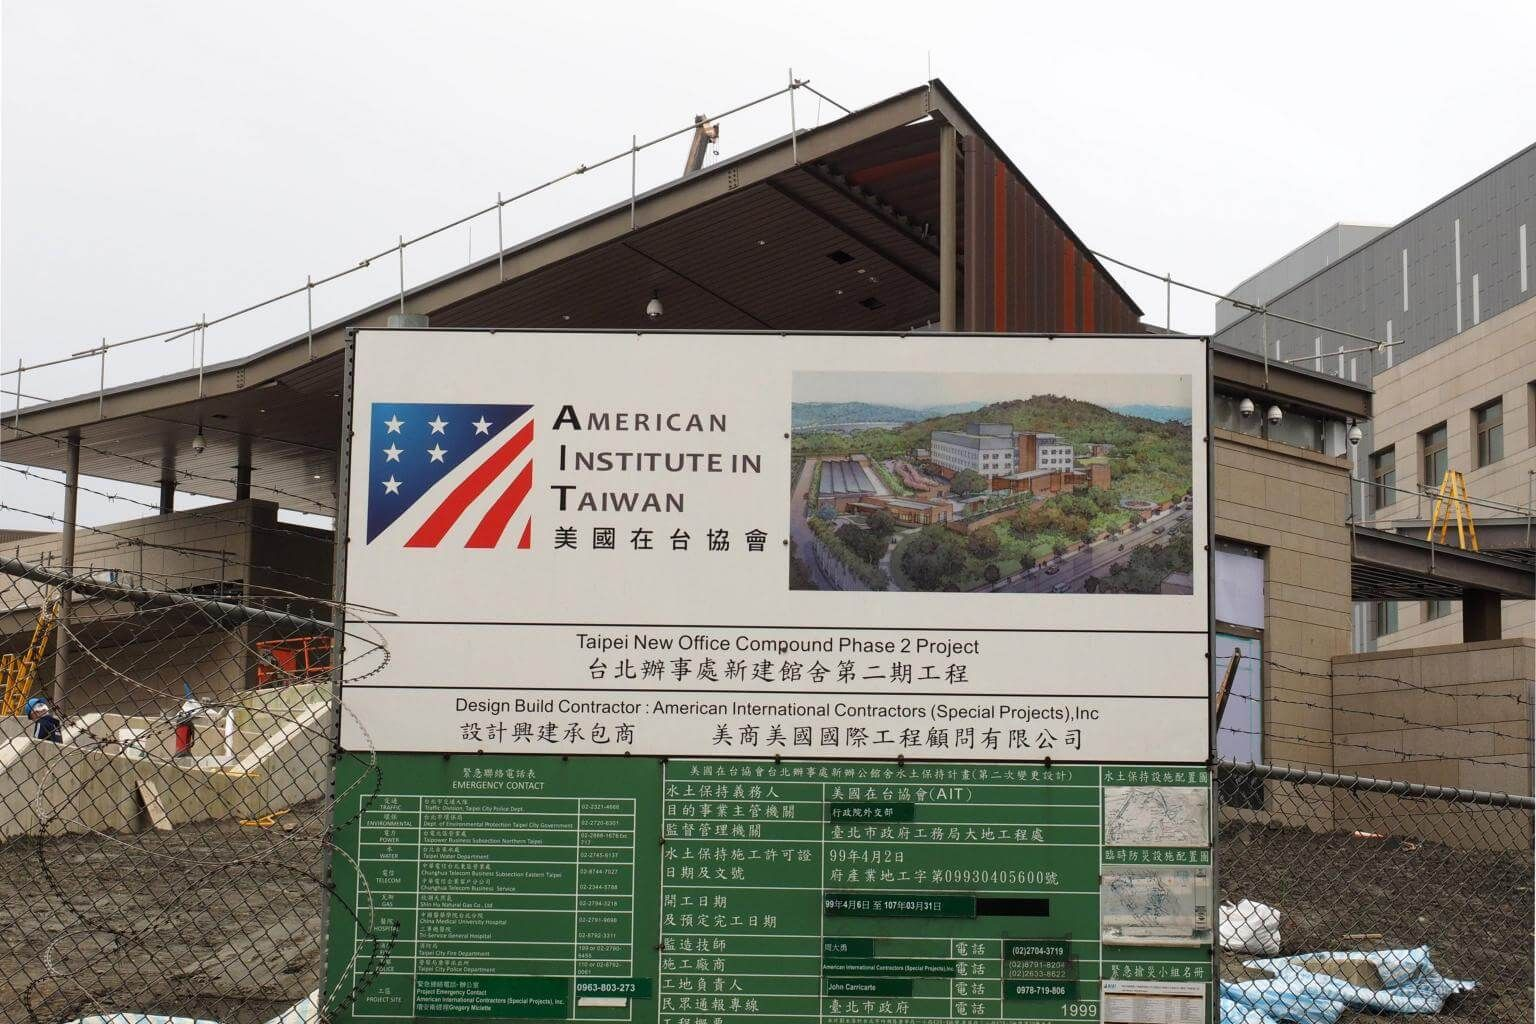 USA  opens de facto embassy in Taiwan as China trade tensions escalate